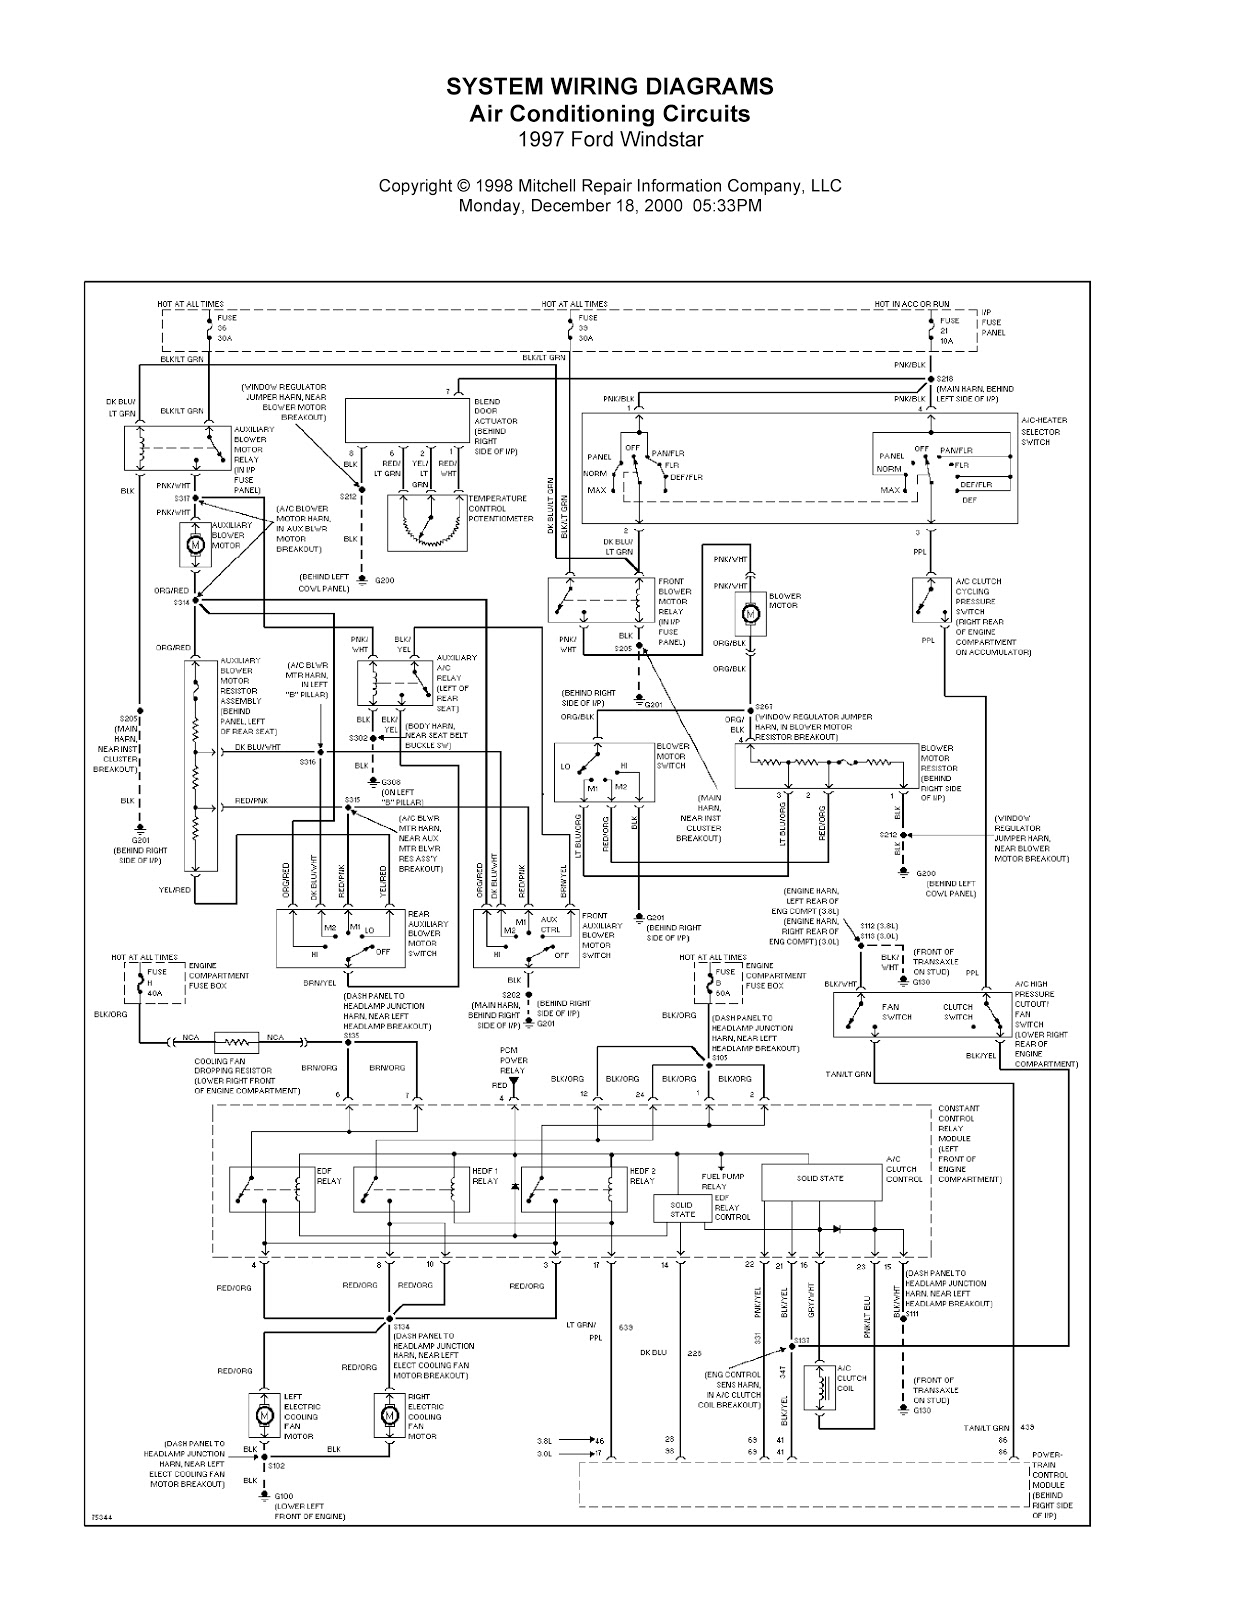 1997 ford windstar complete system wiring diagrams wiring on 97 F150 Wiring Harness for 1997 ford windstar complete system wiring diagrams wiring diagrams center at 1997 E350 Wiring Diagram